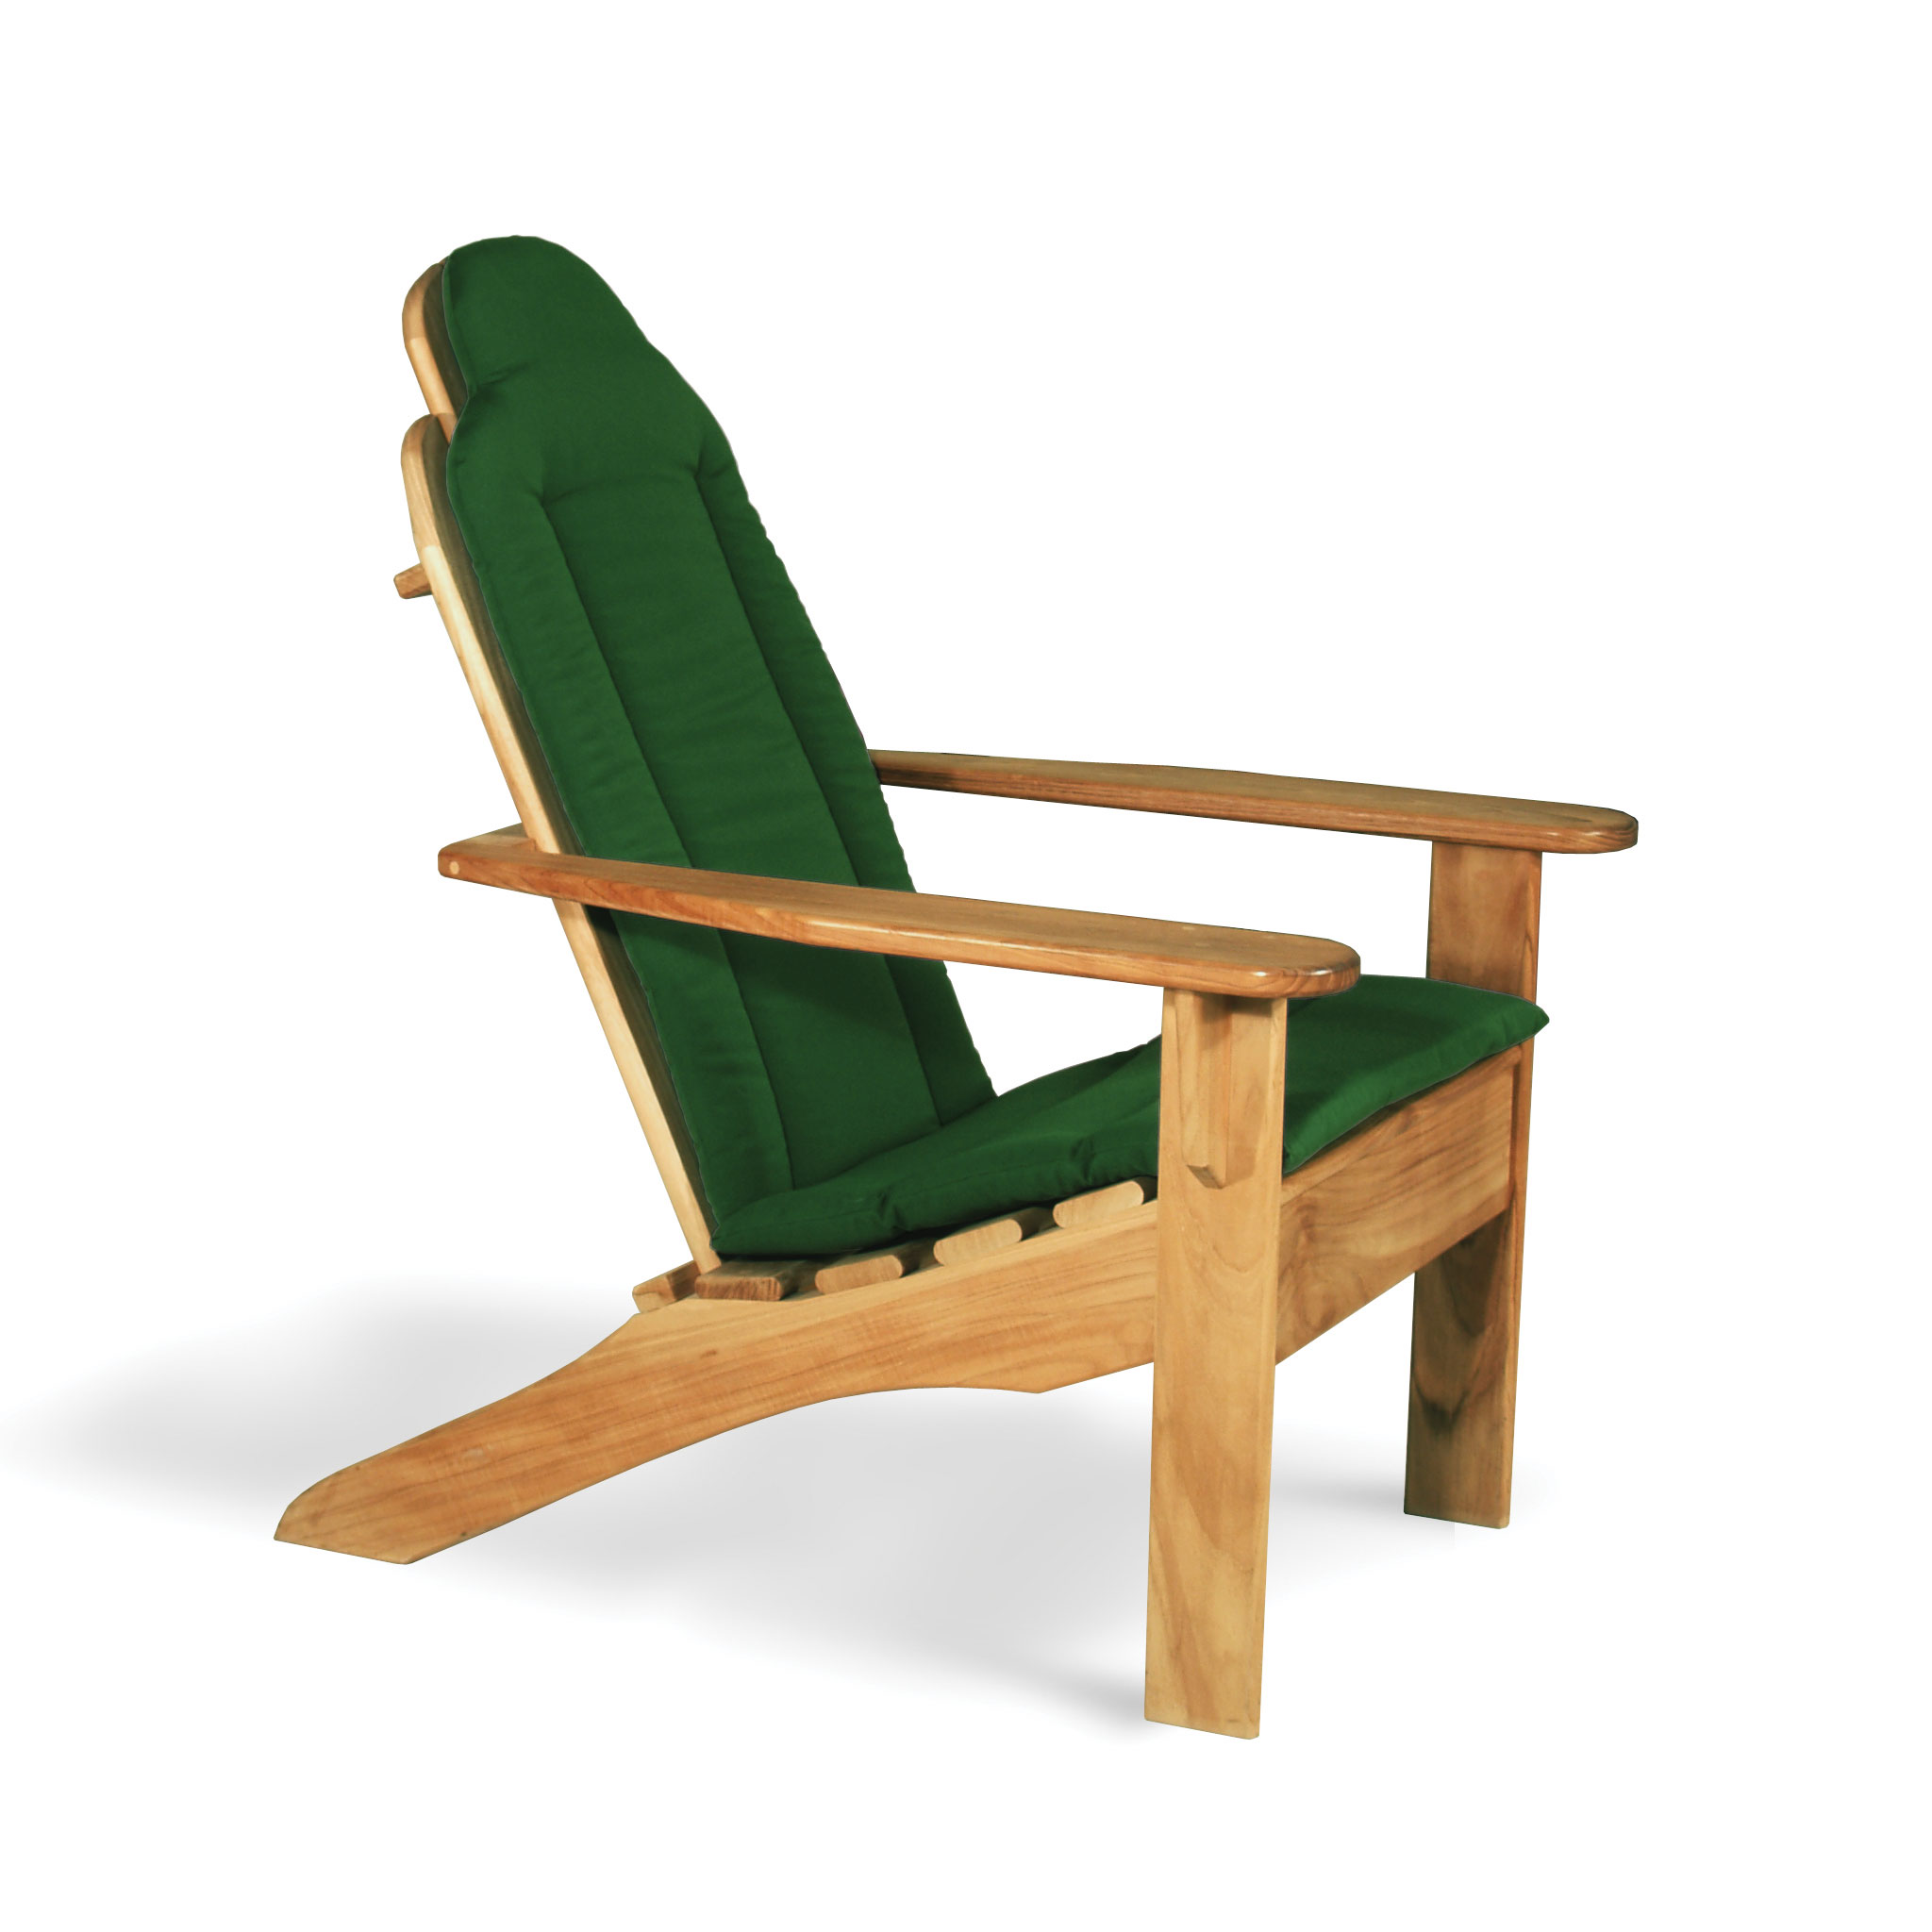 charming teak adirondack chairs with green seat cover for outdoor furniture ideas